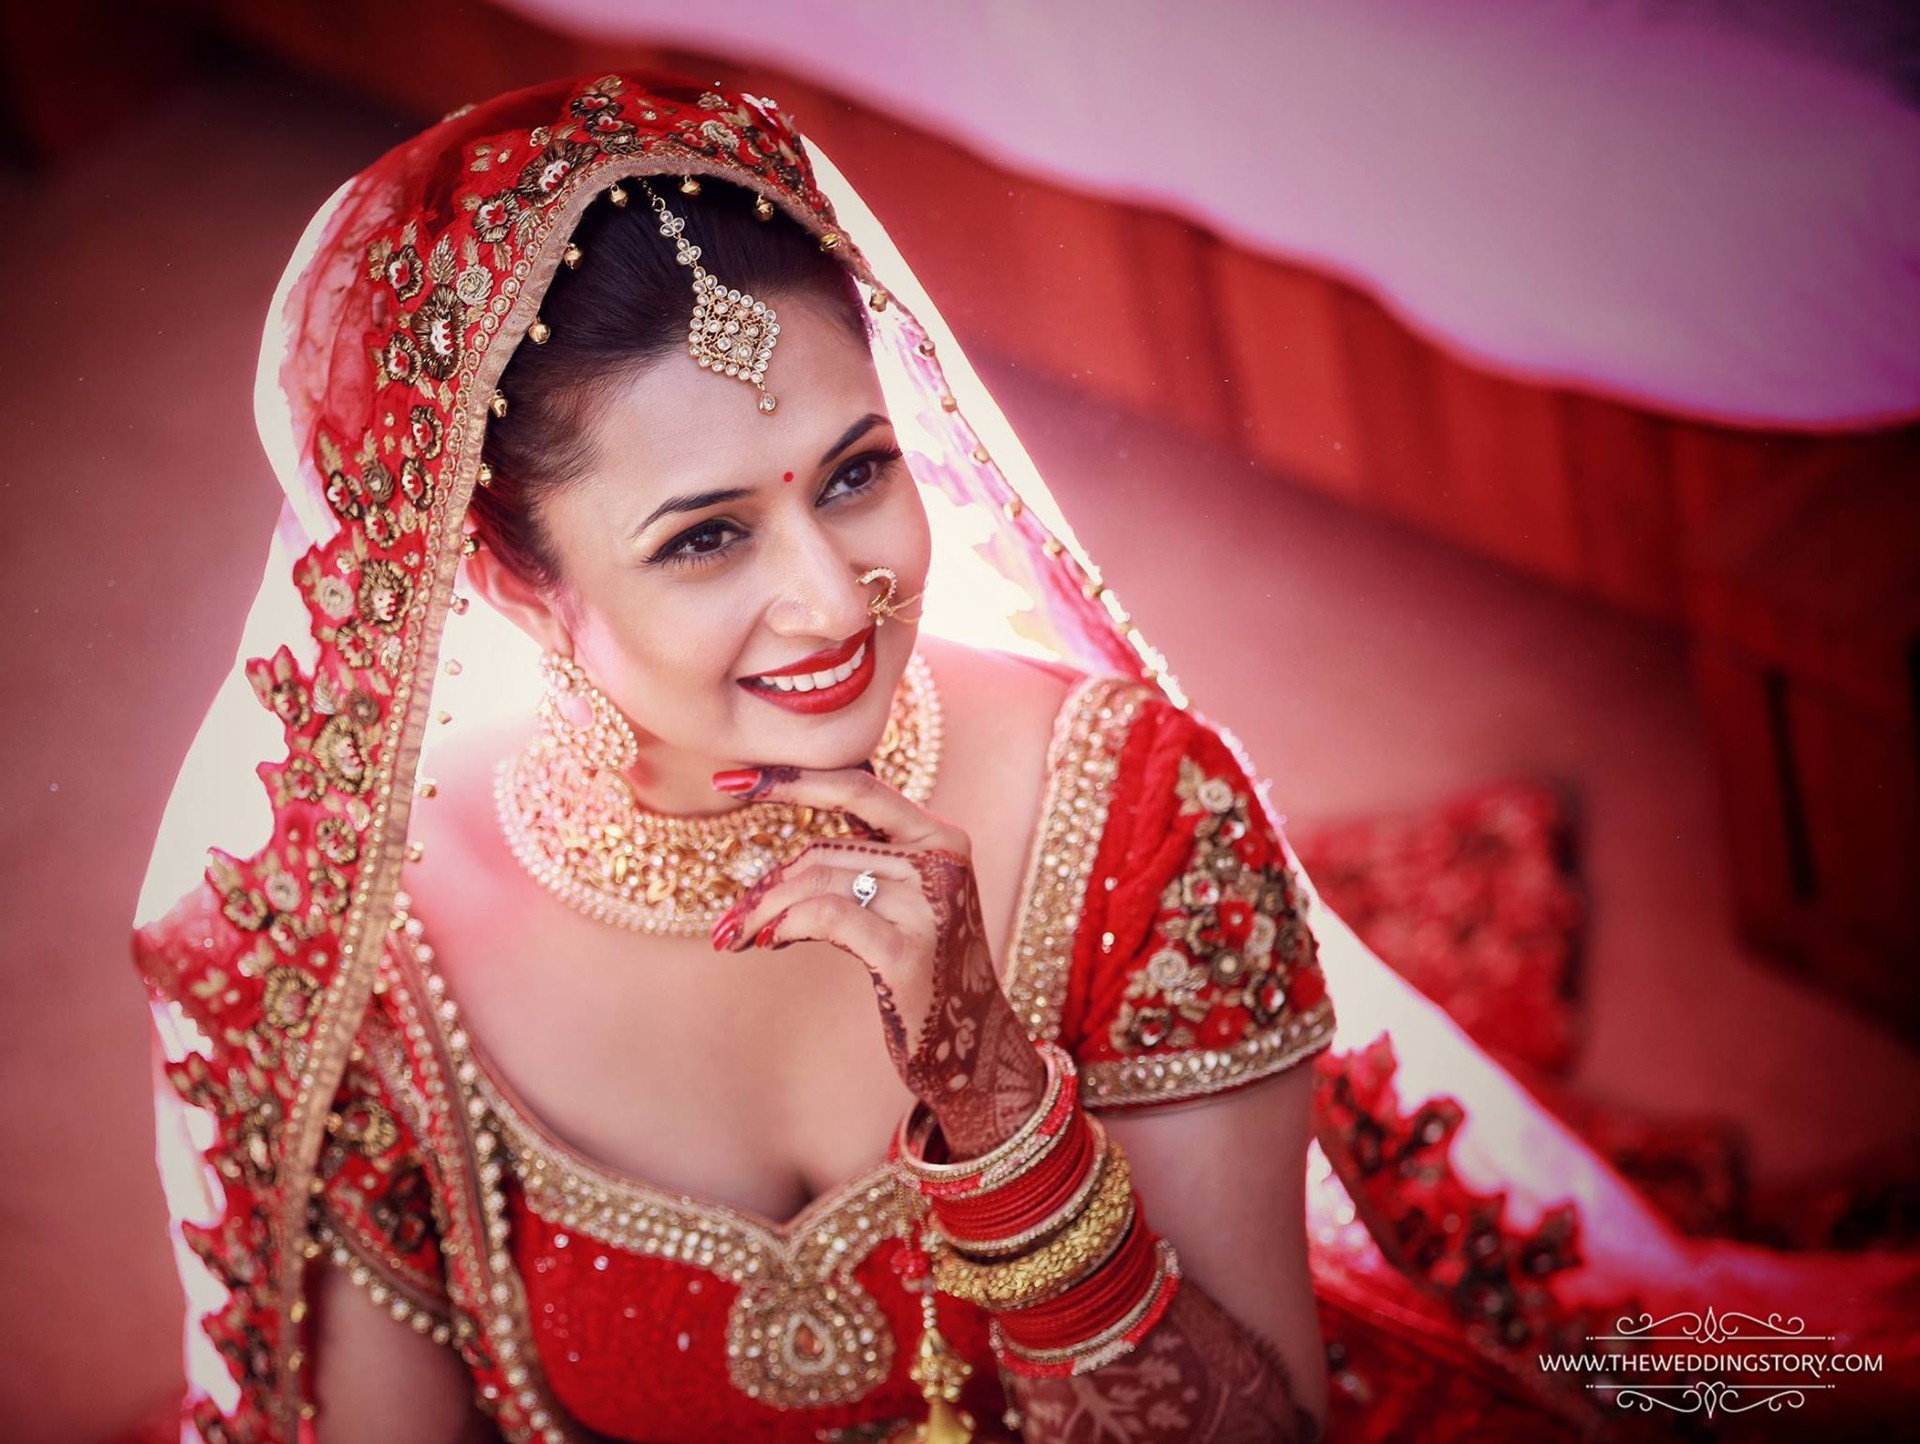 Divyanka Tripathi Bride Girl images